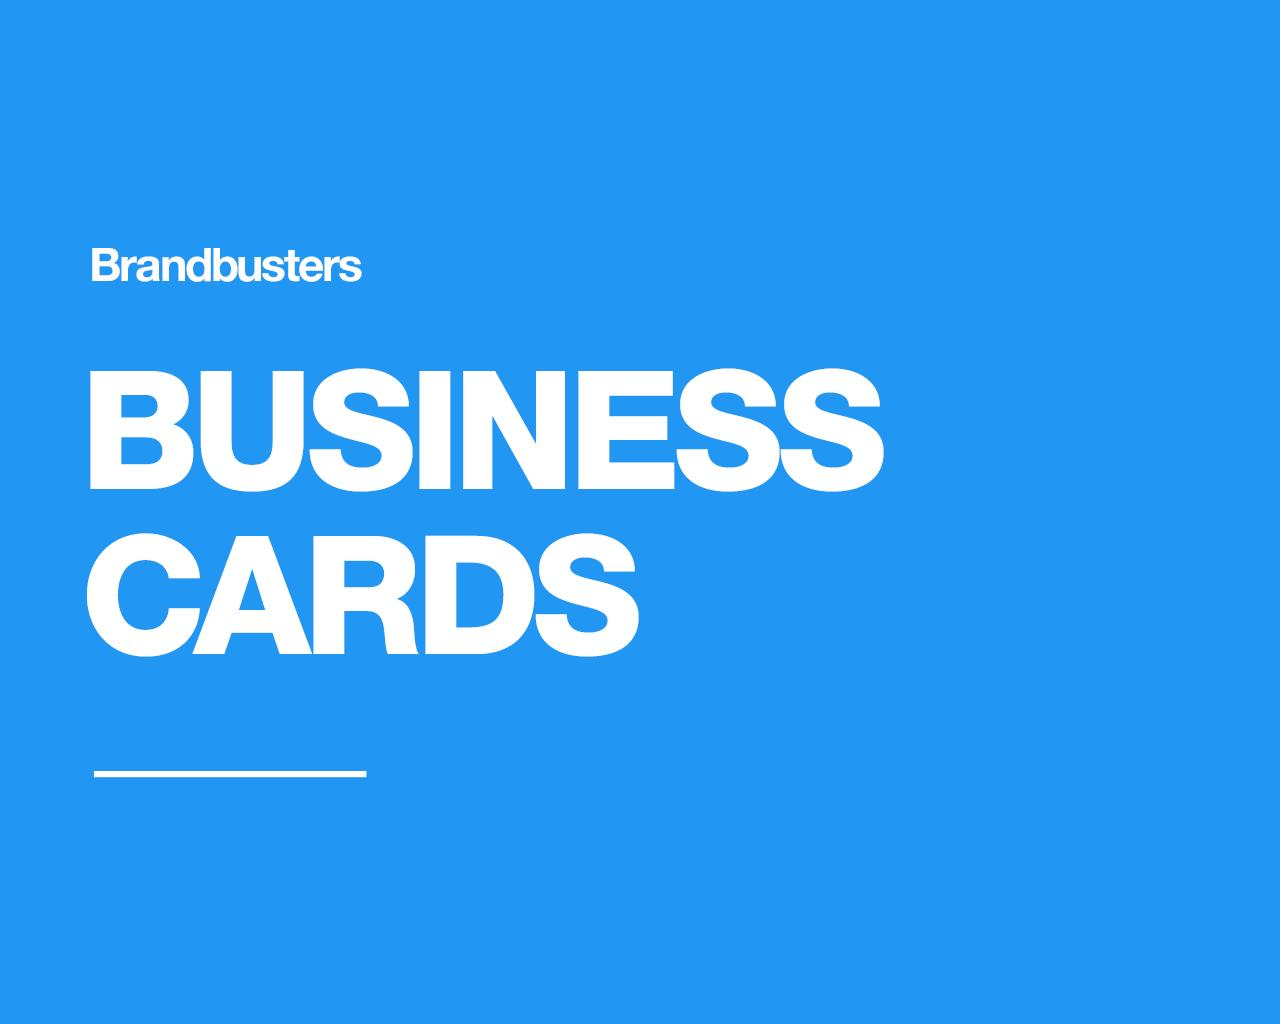 Professional Business Card Design by Brandbusters - 110653